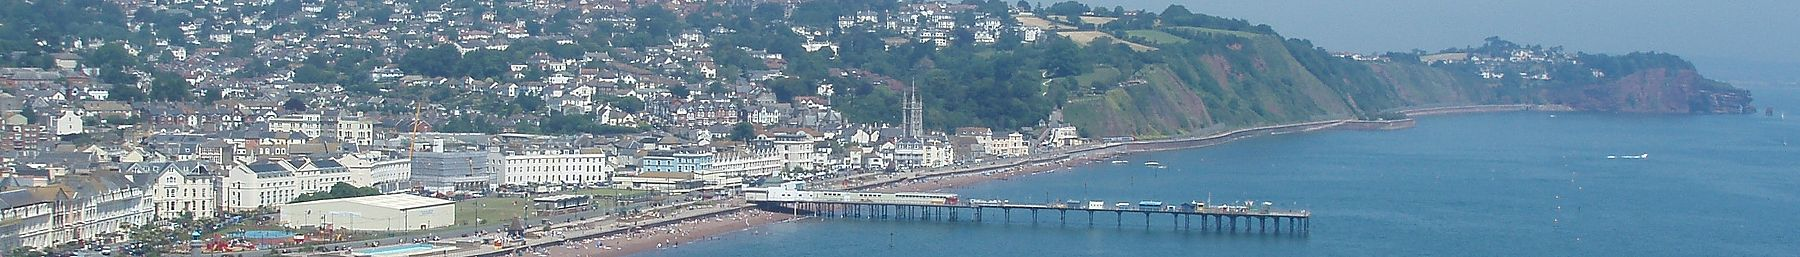 Teignmouth banner From Ness.JPG